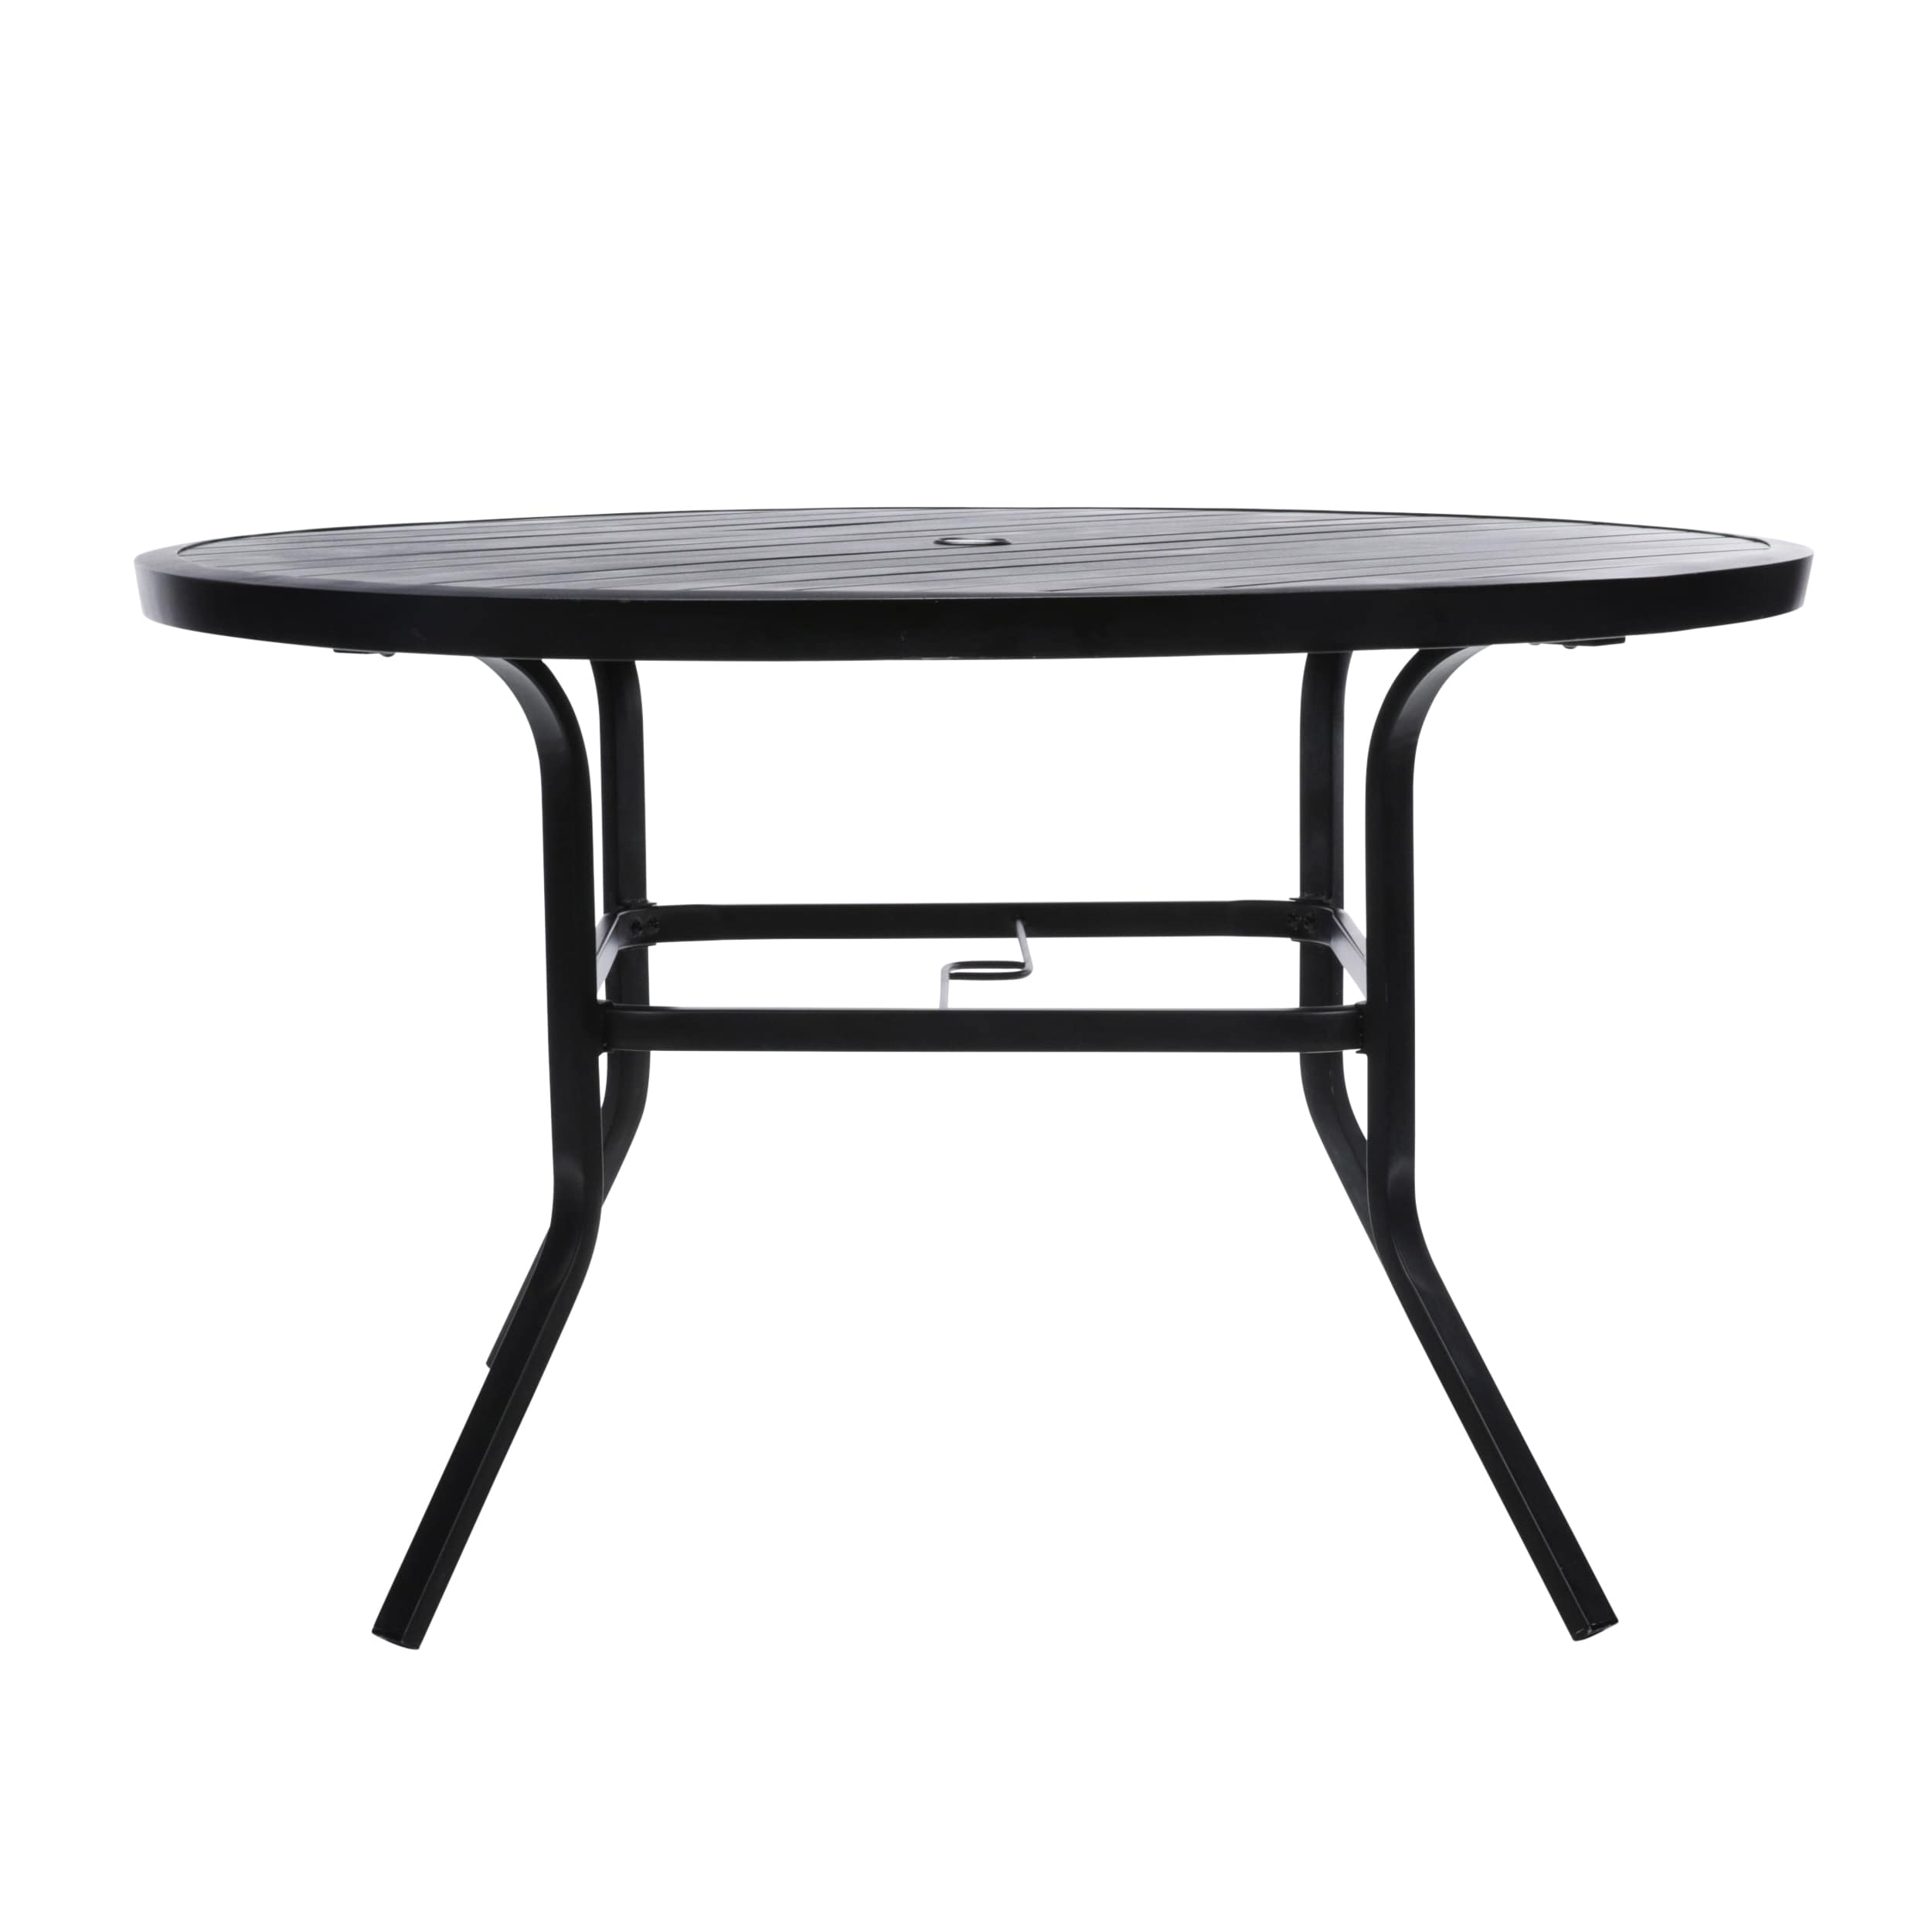 Style Selections Pelham bay Round Outdoor Dining Table 9 in W x ...